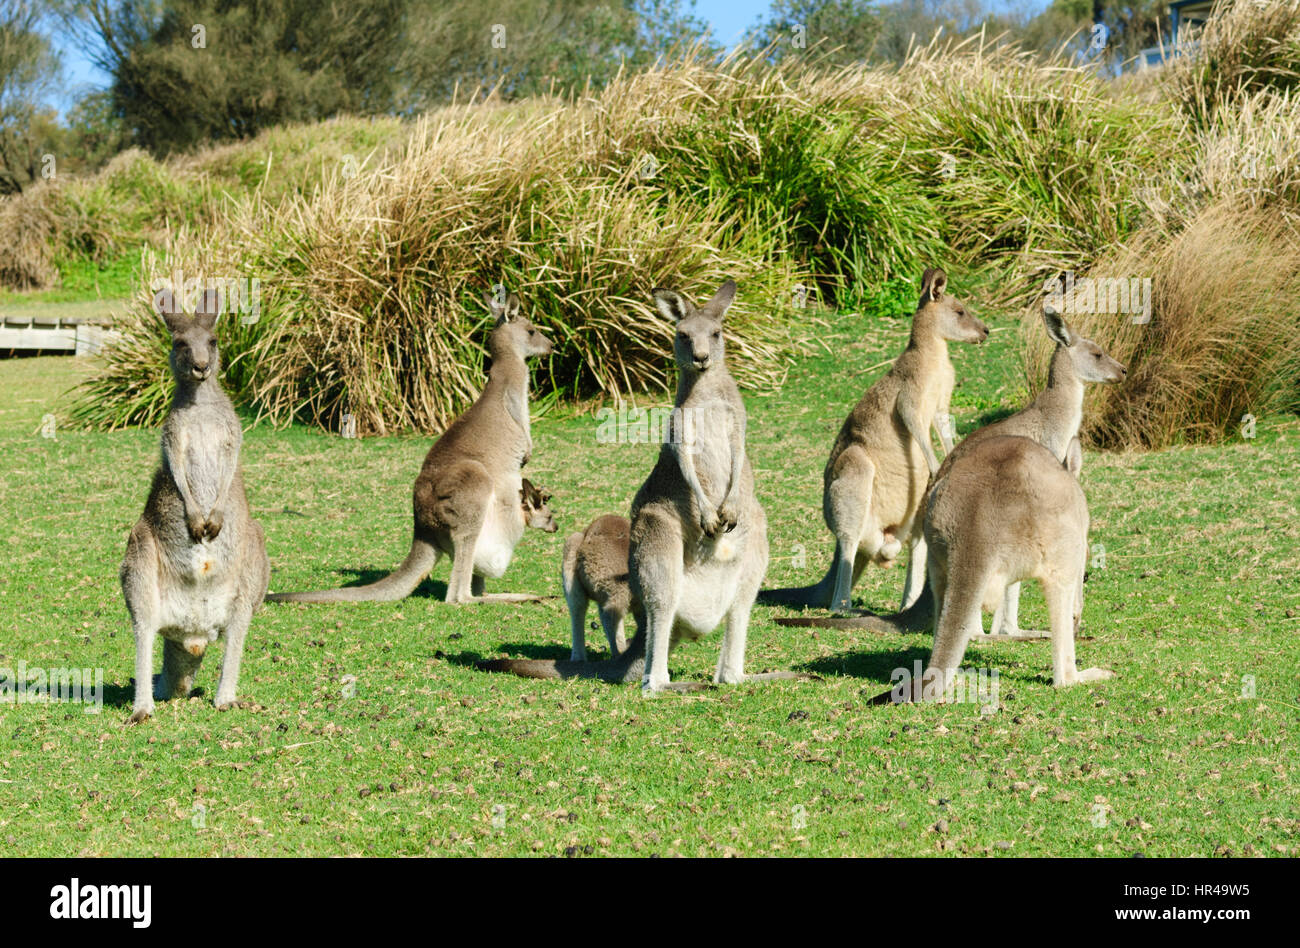 Groups of Eastern Grey Kangaroos (Macropus giganteus), Potato Point, New South Wales, Australia - Stock Image